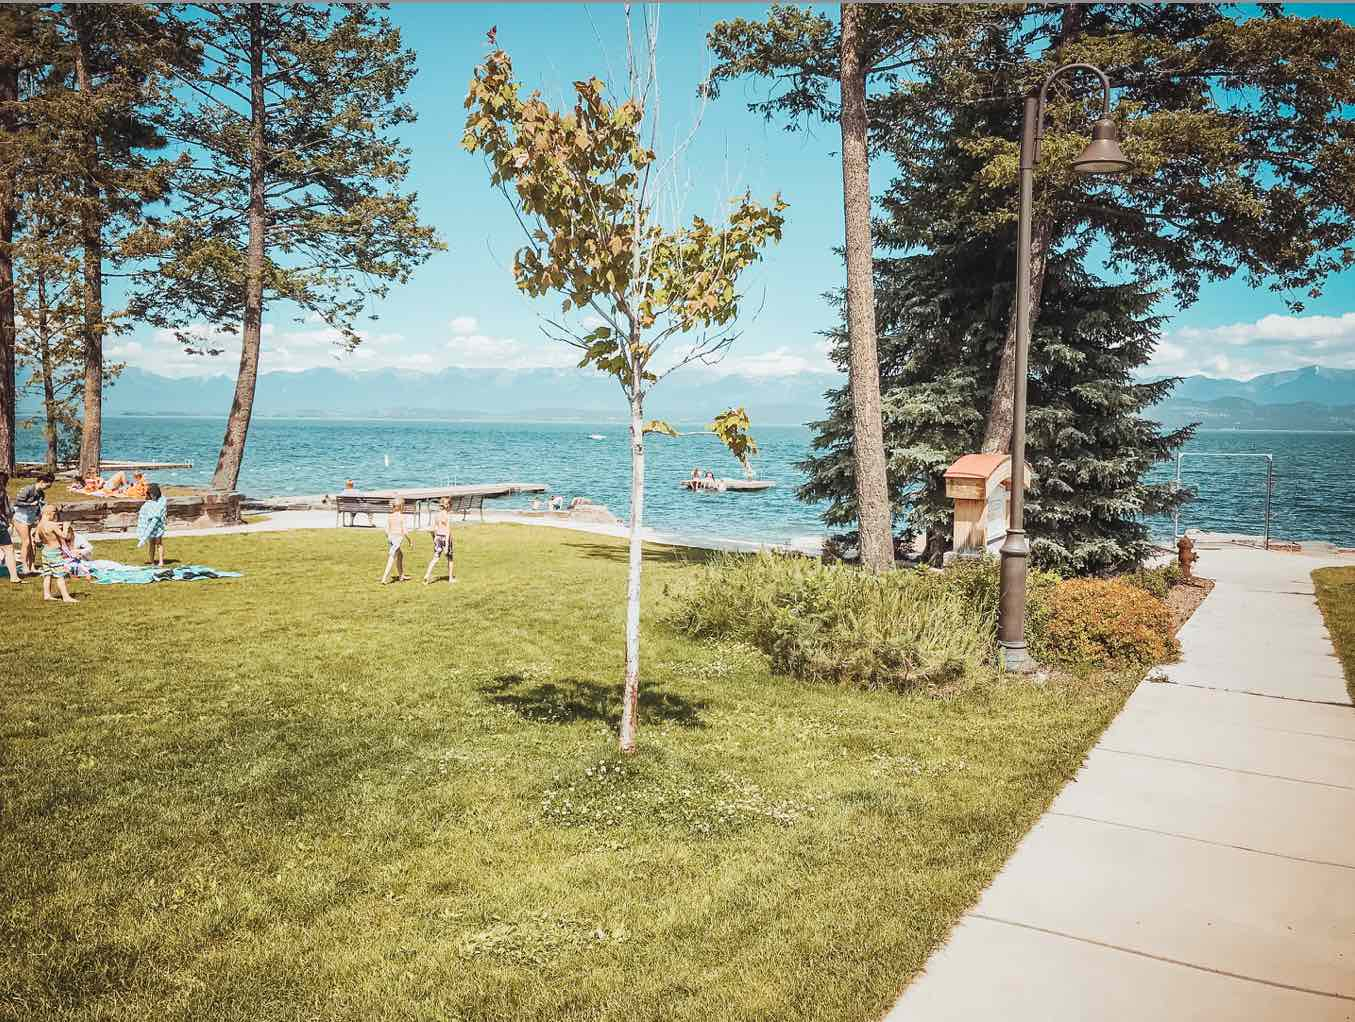 volunteer-park-flathead-lake